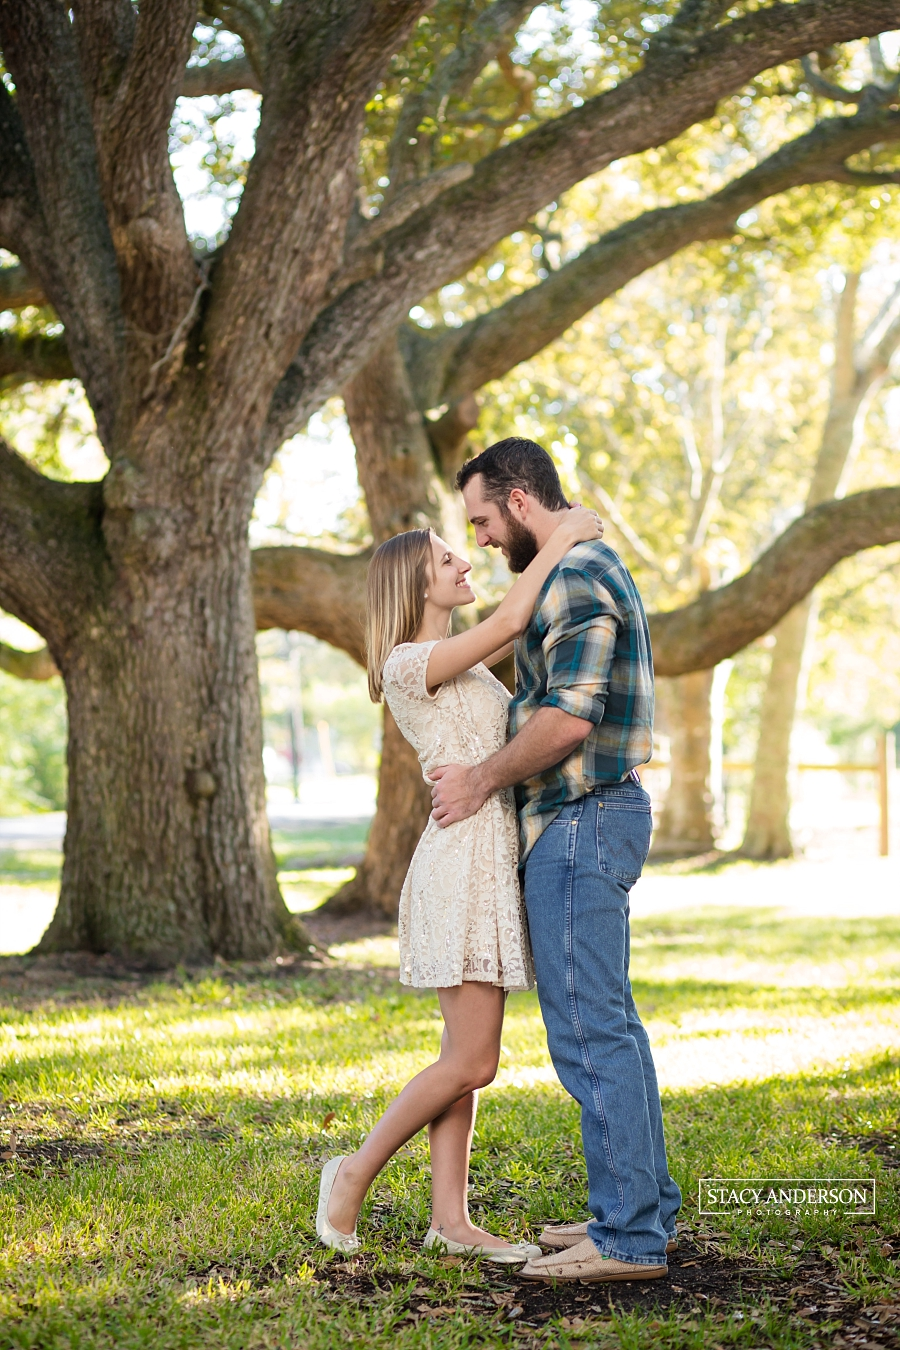 stacy-anderson-photography-alvin-wedding-photographer_0019